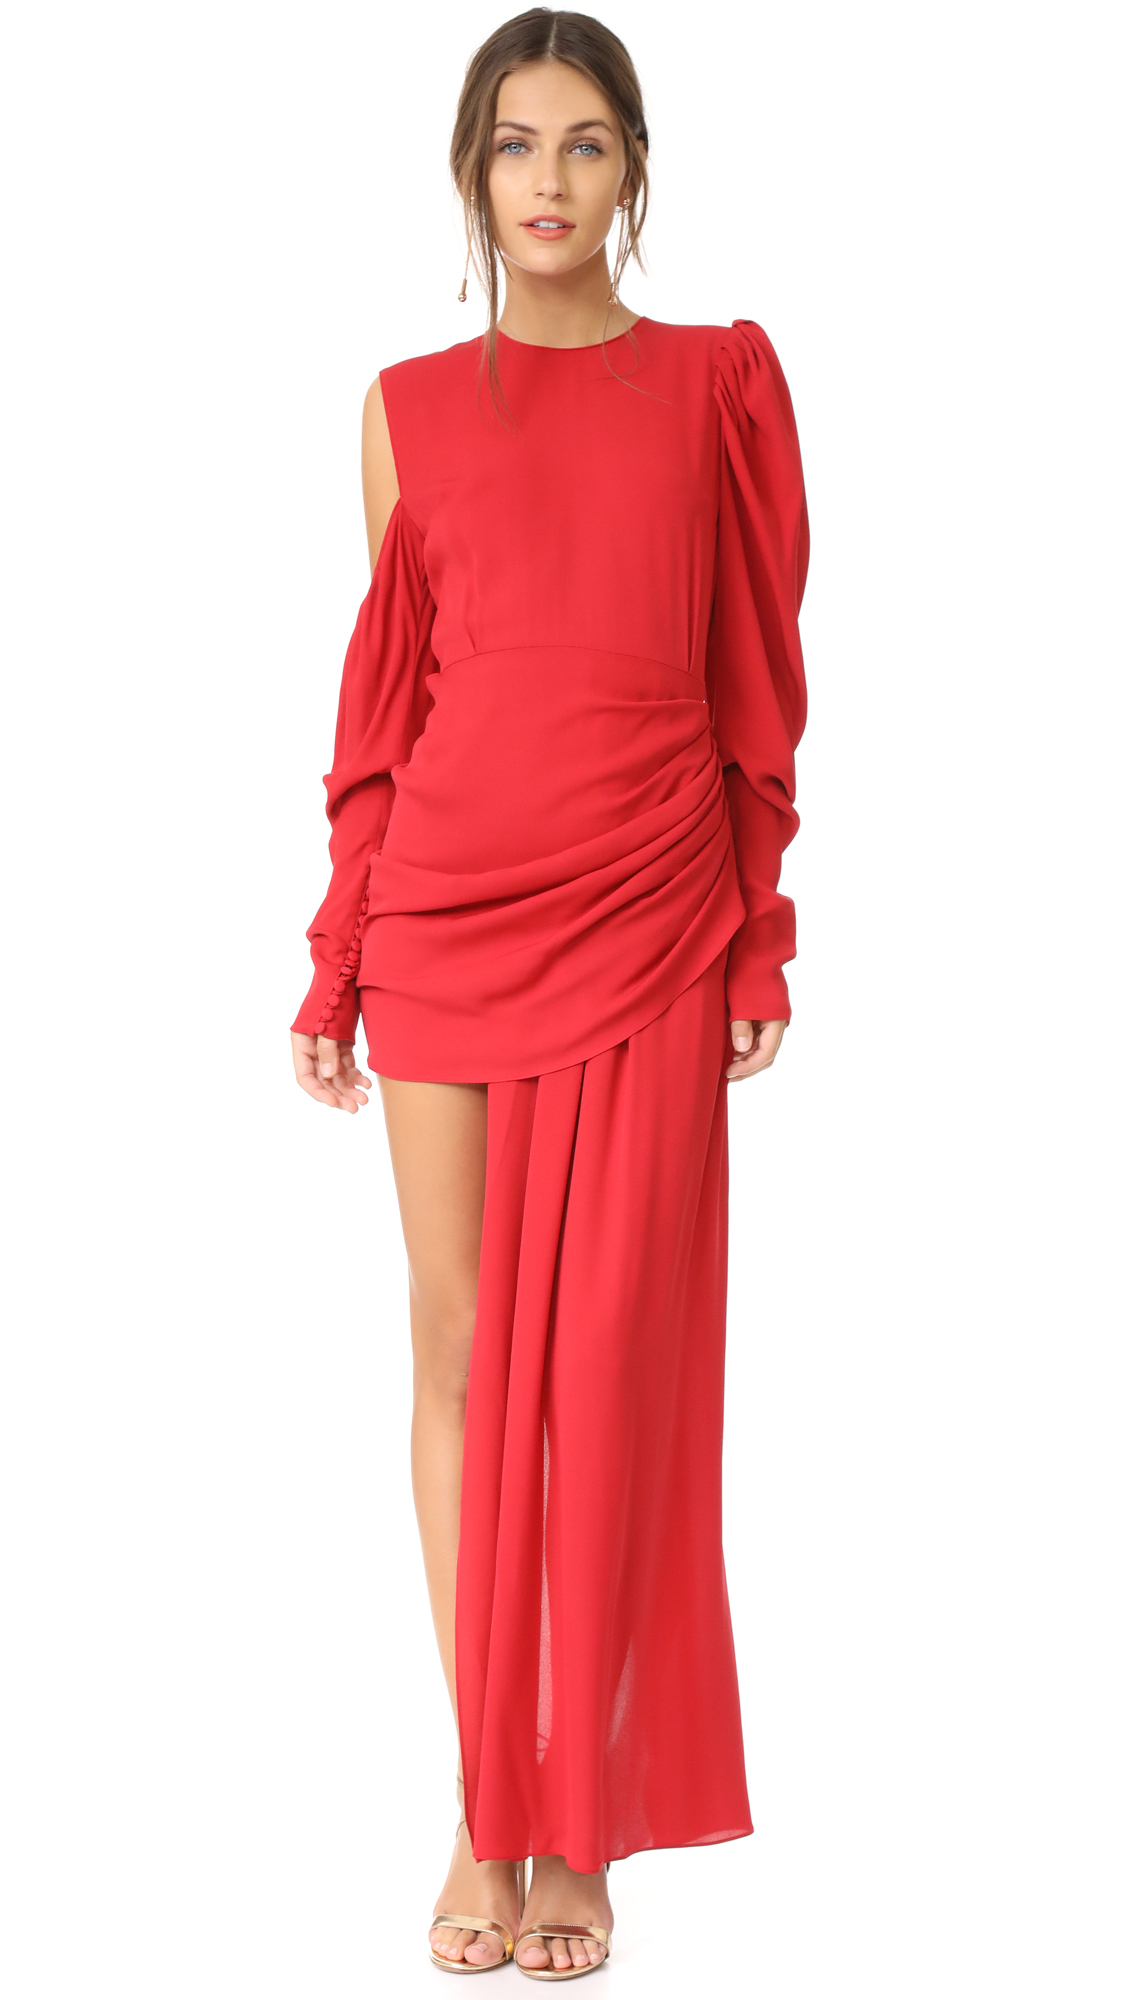 Magda Butrym Sevilla Dress - Red